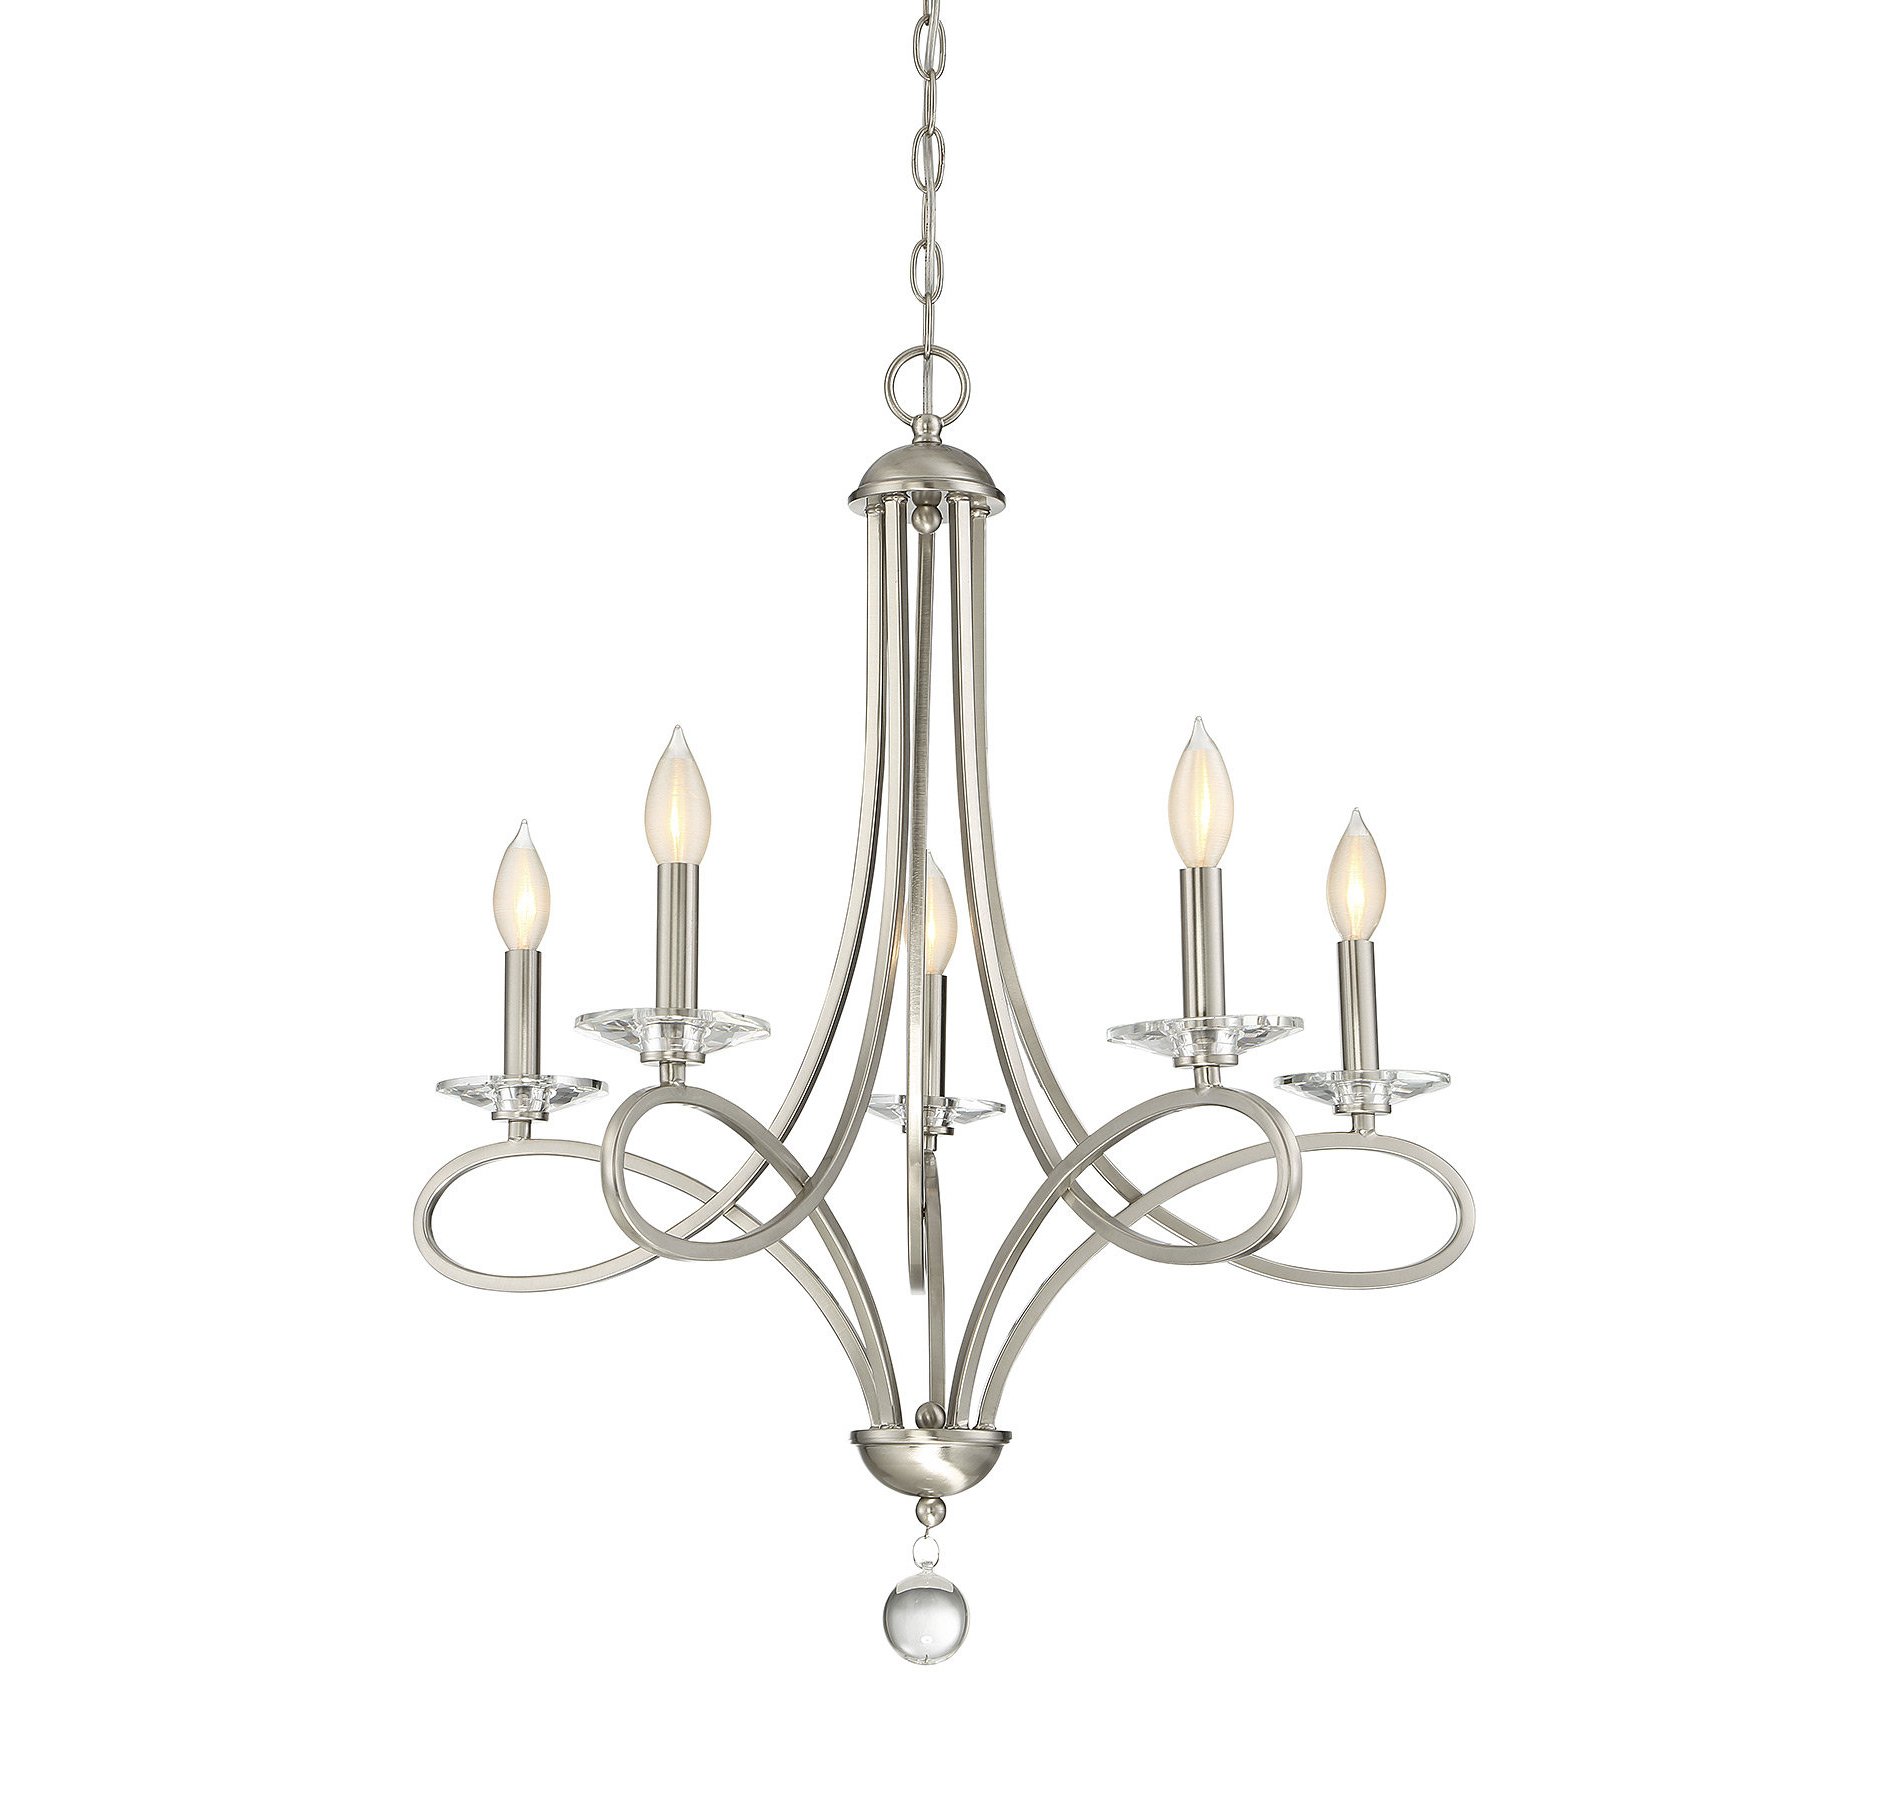 Hesse 5 Light Candle Style Chandeliers Within Most Up To Date Willa Arlo Interiors Berger 5 Light Candle Style Chandelier (Gallery 6 of 25)